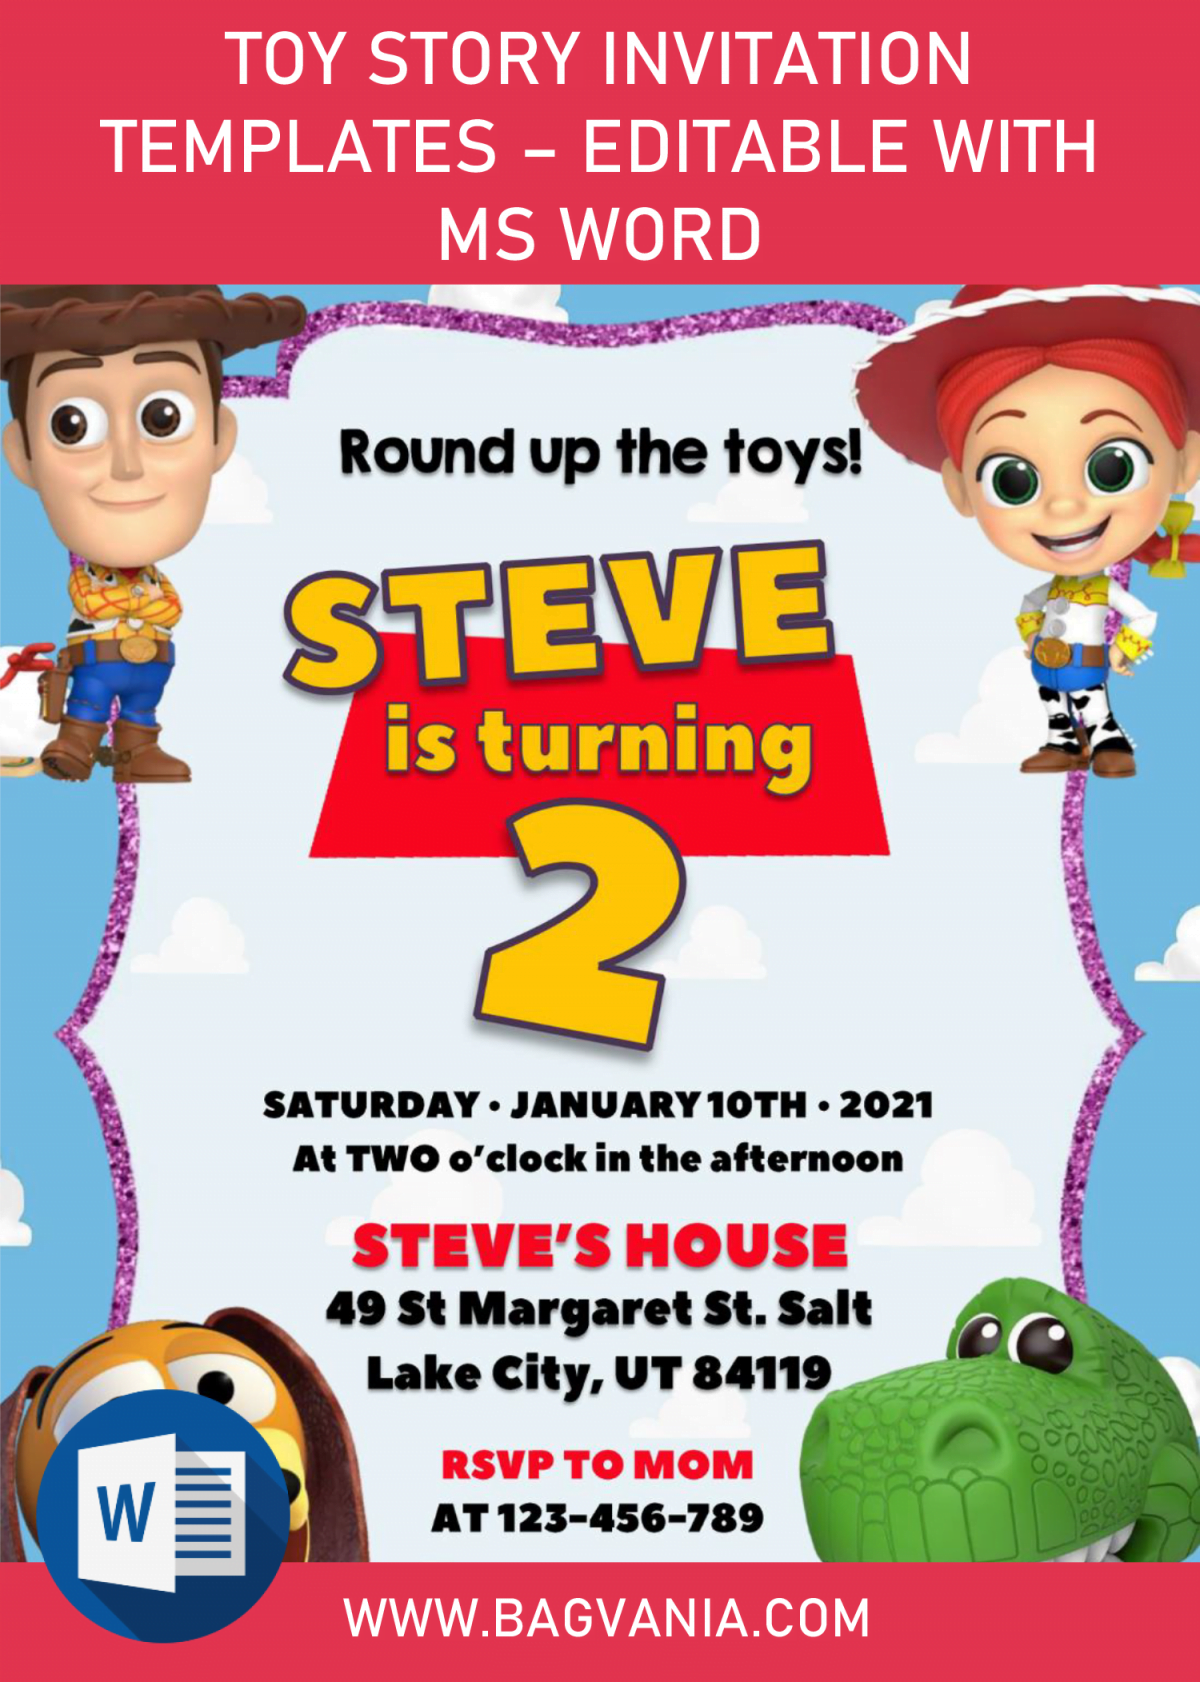 Toy Story Invitation Templates - Editable With MS Word